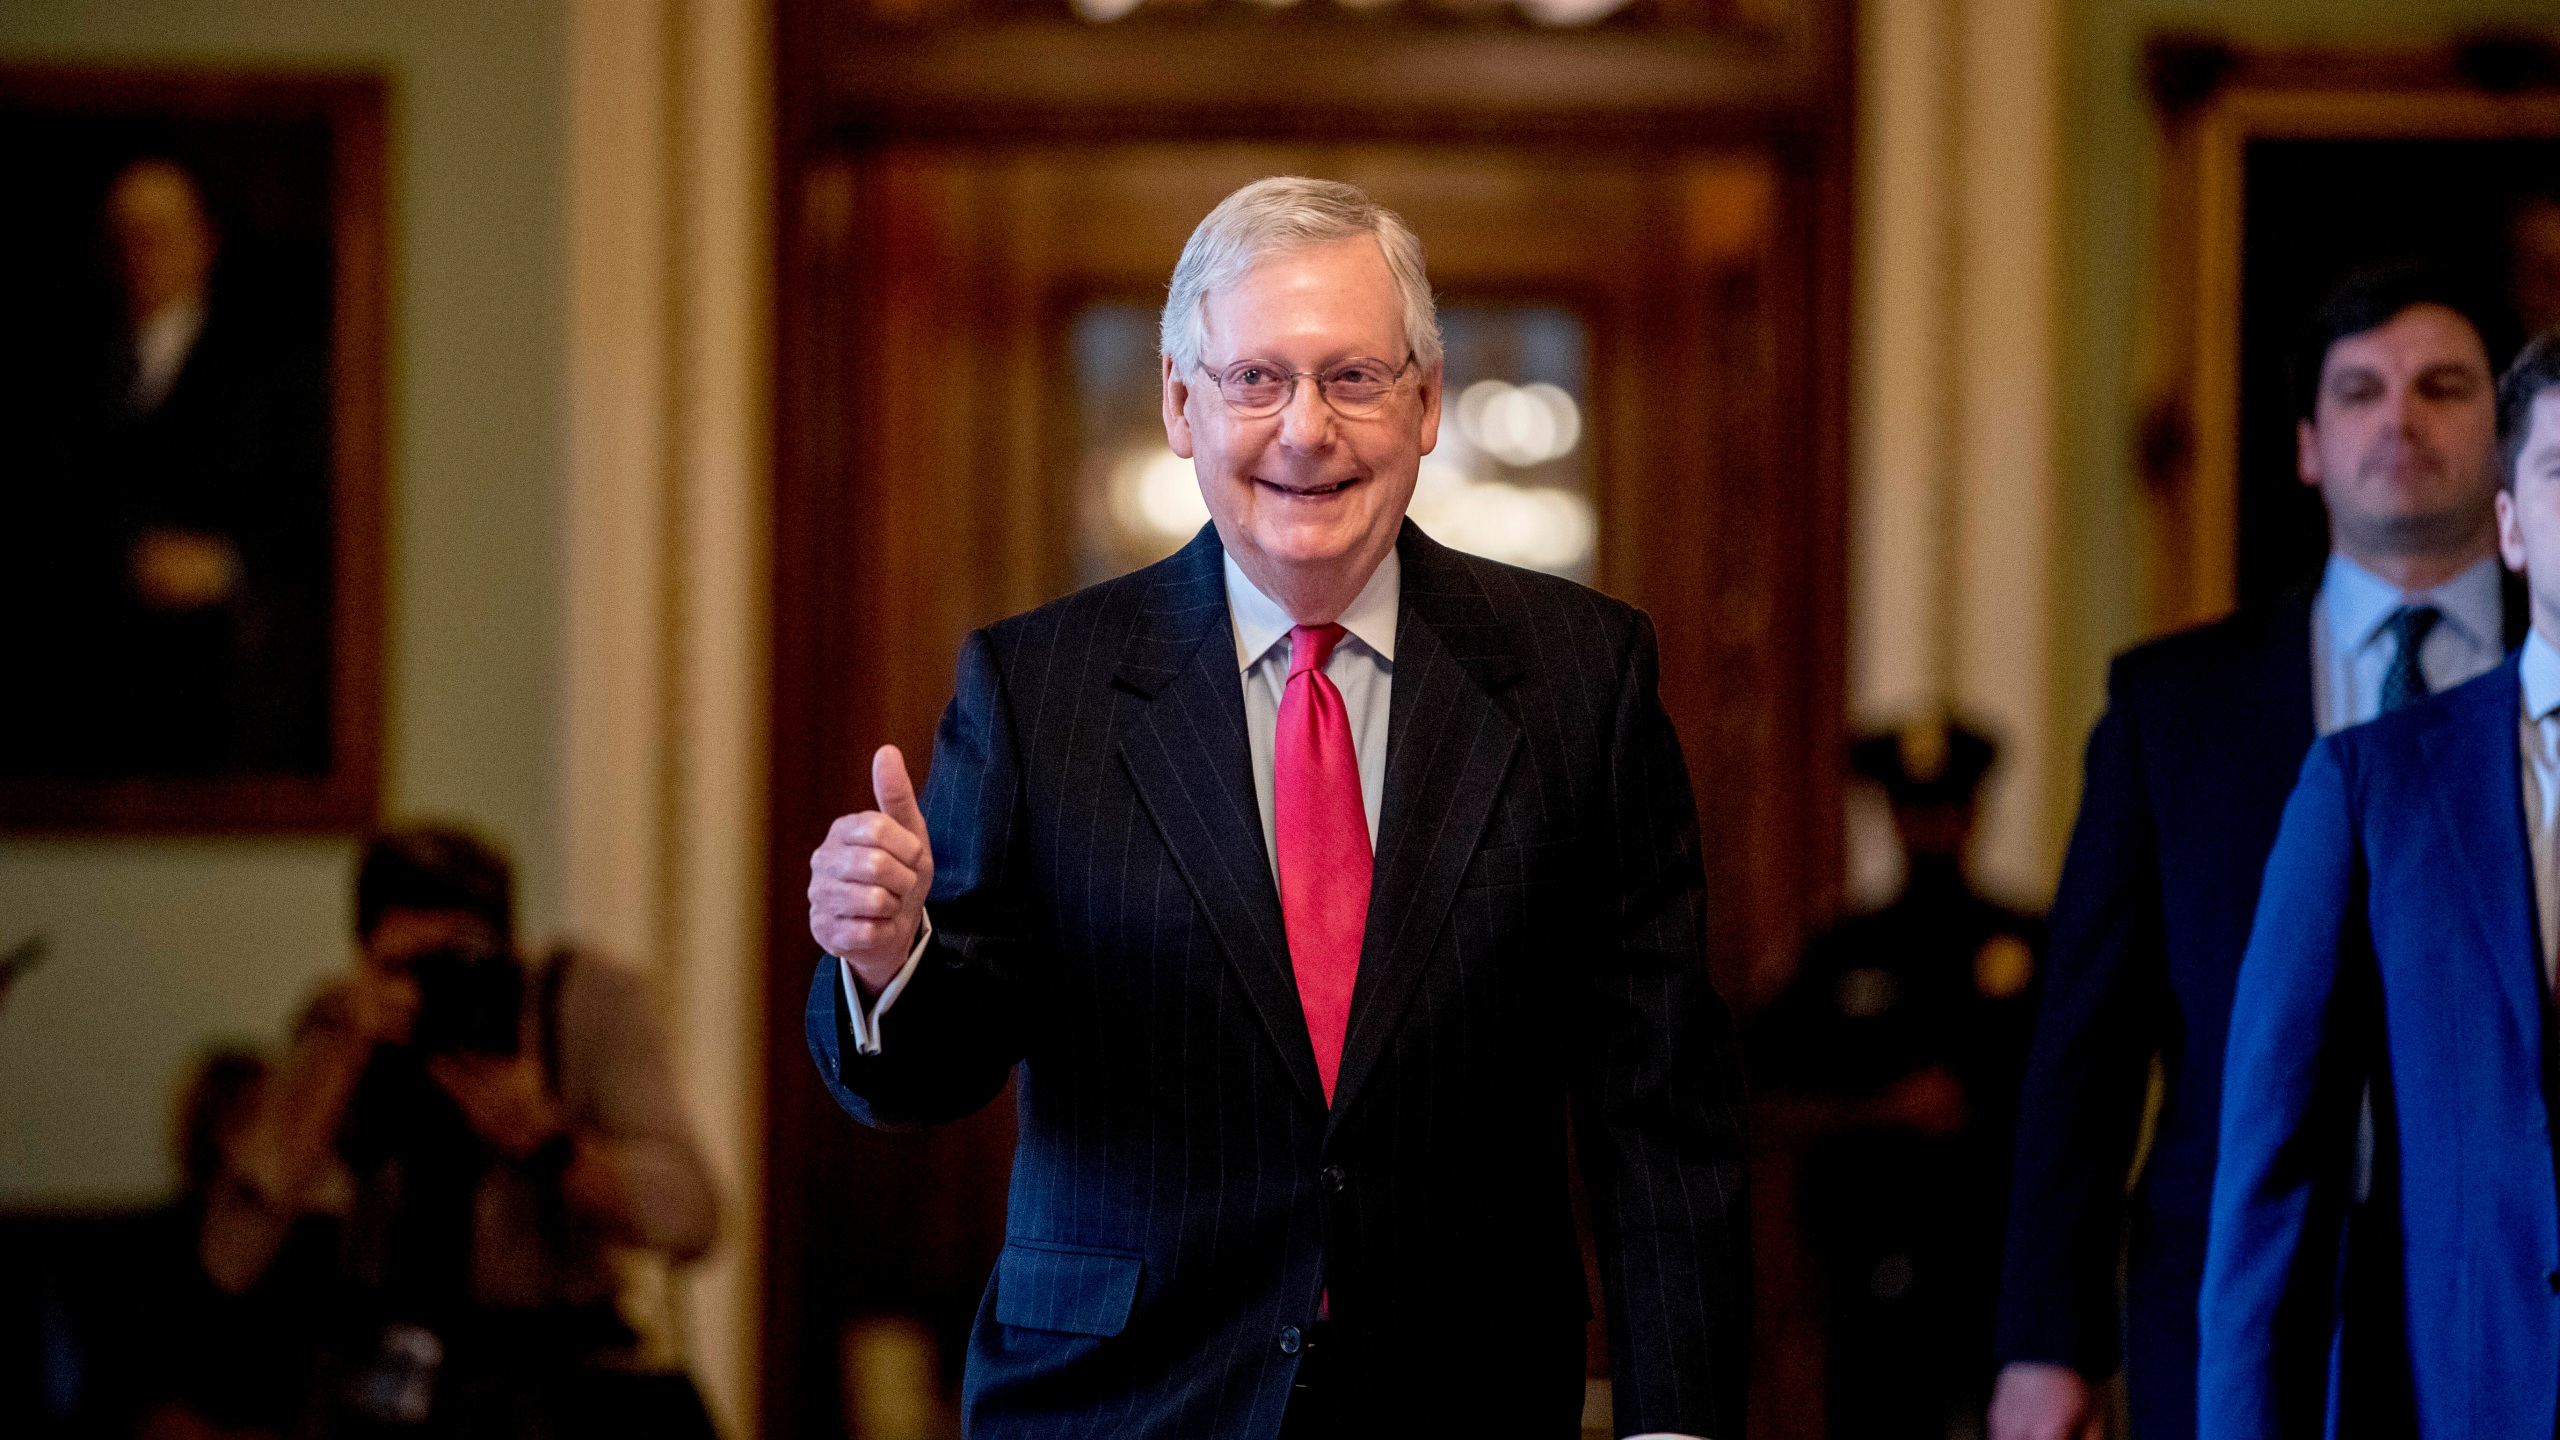 McConnell gives thumbs up and smile